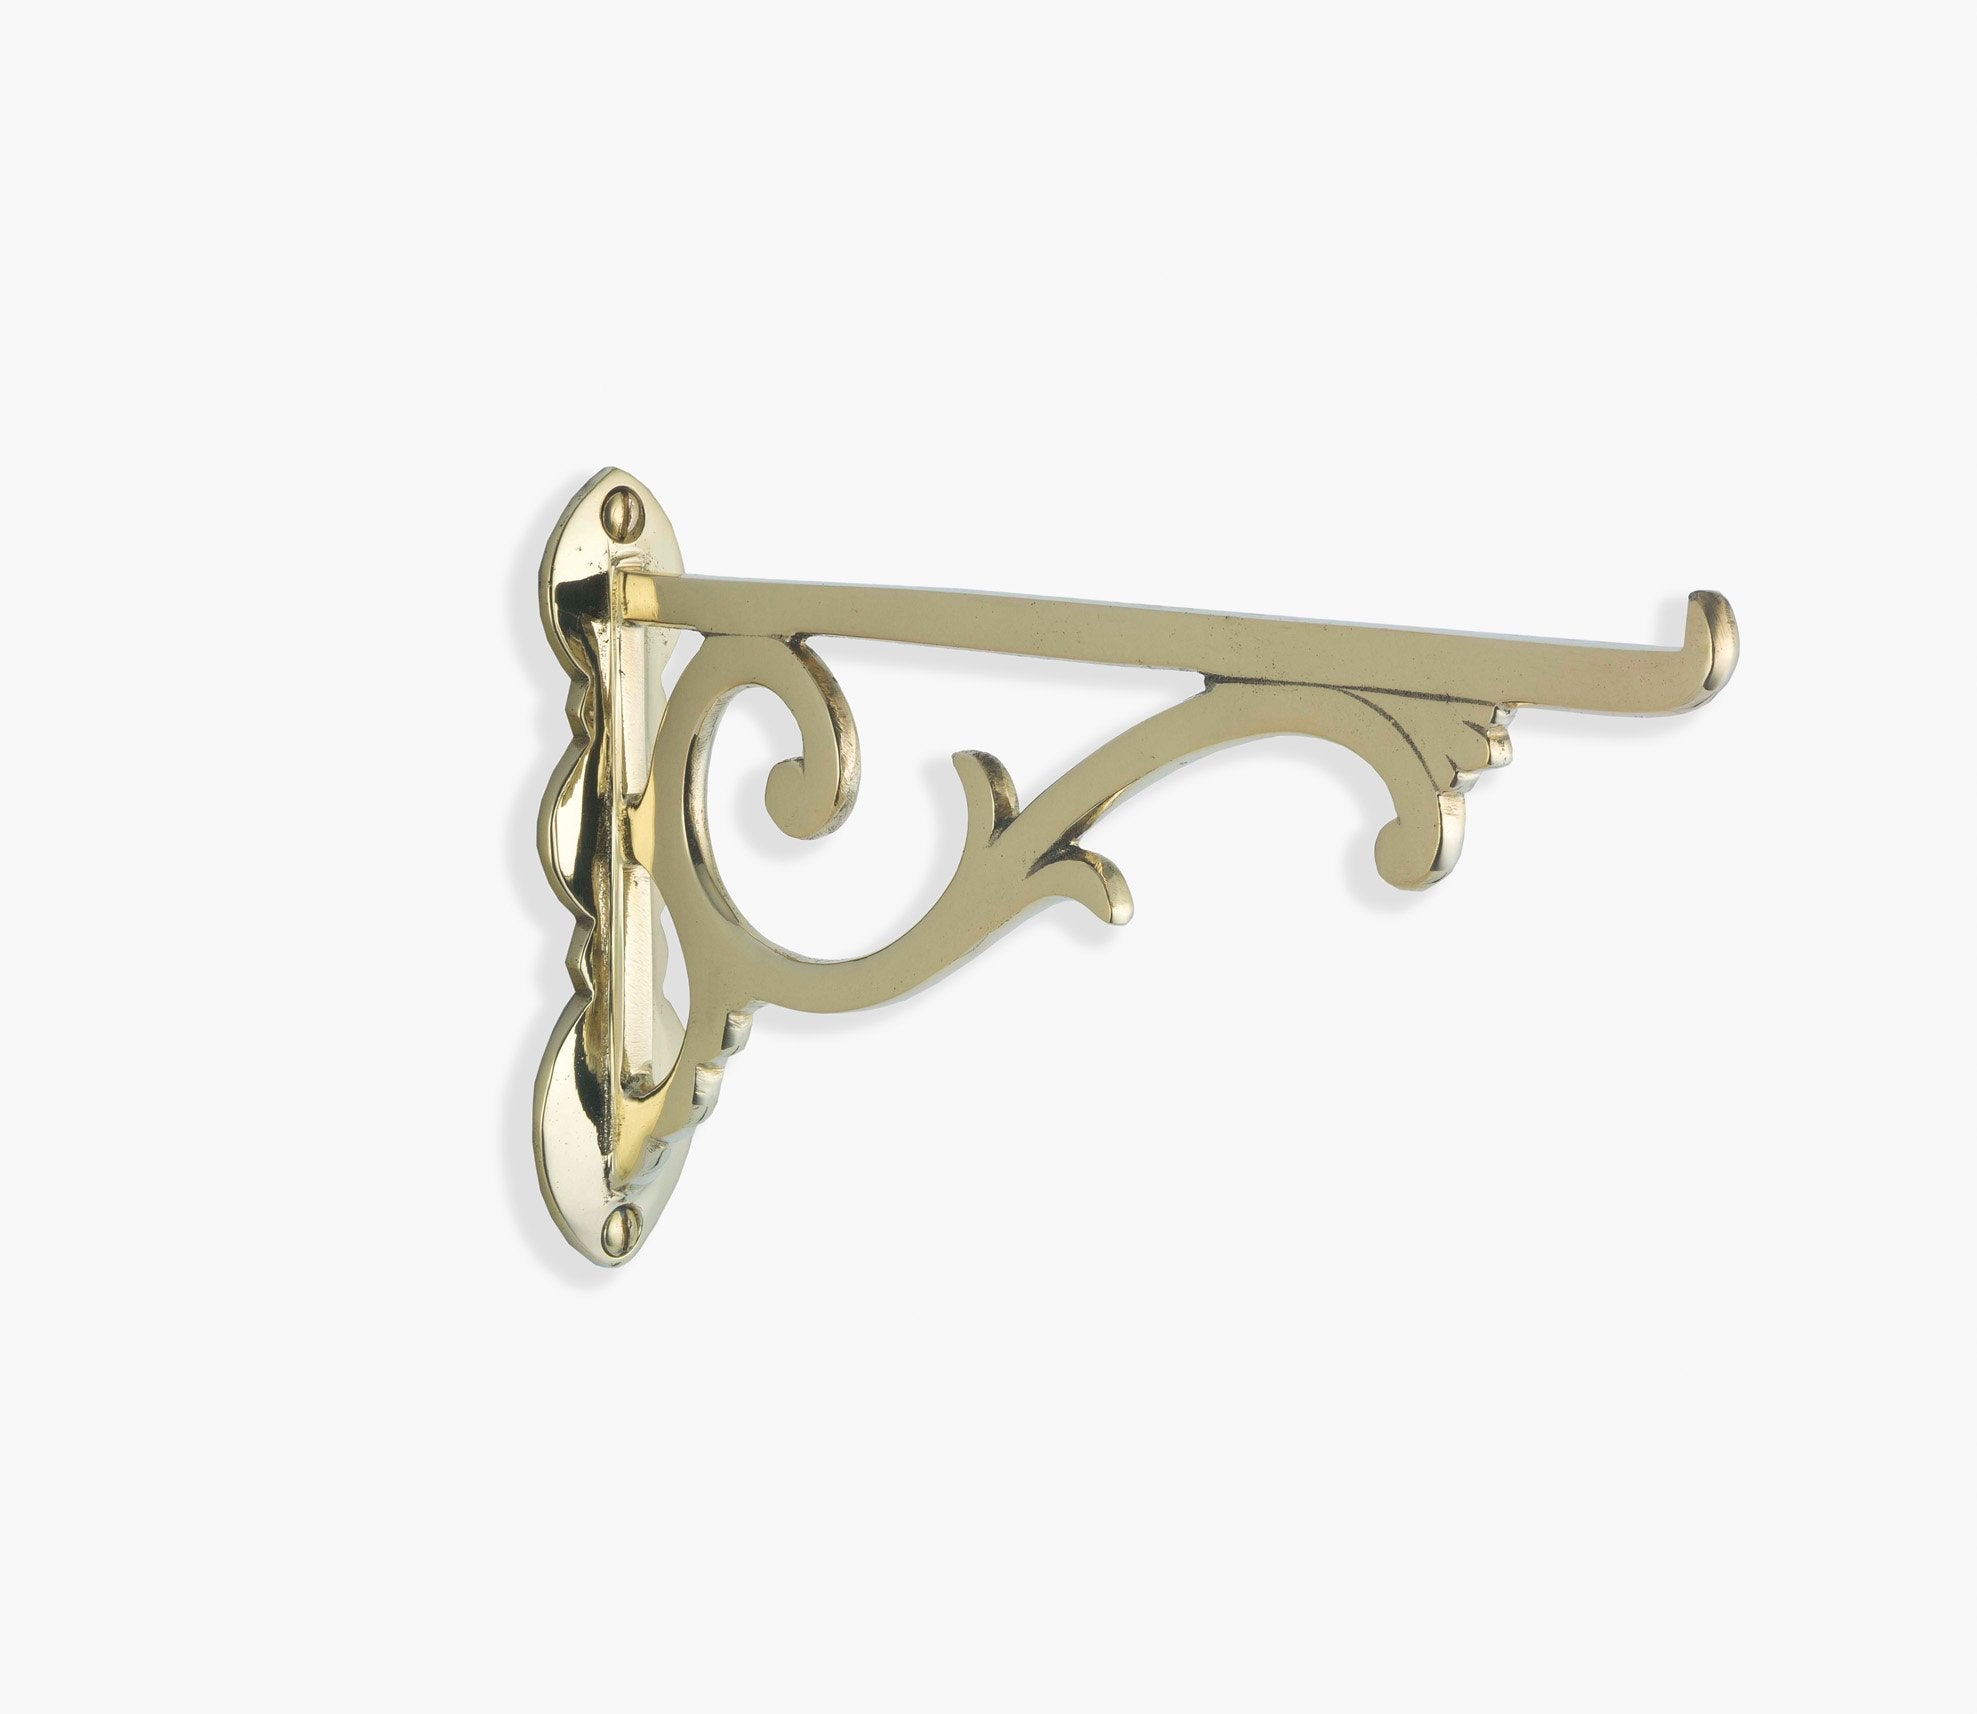 Shelf Bracket 102 Product Image 1